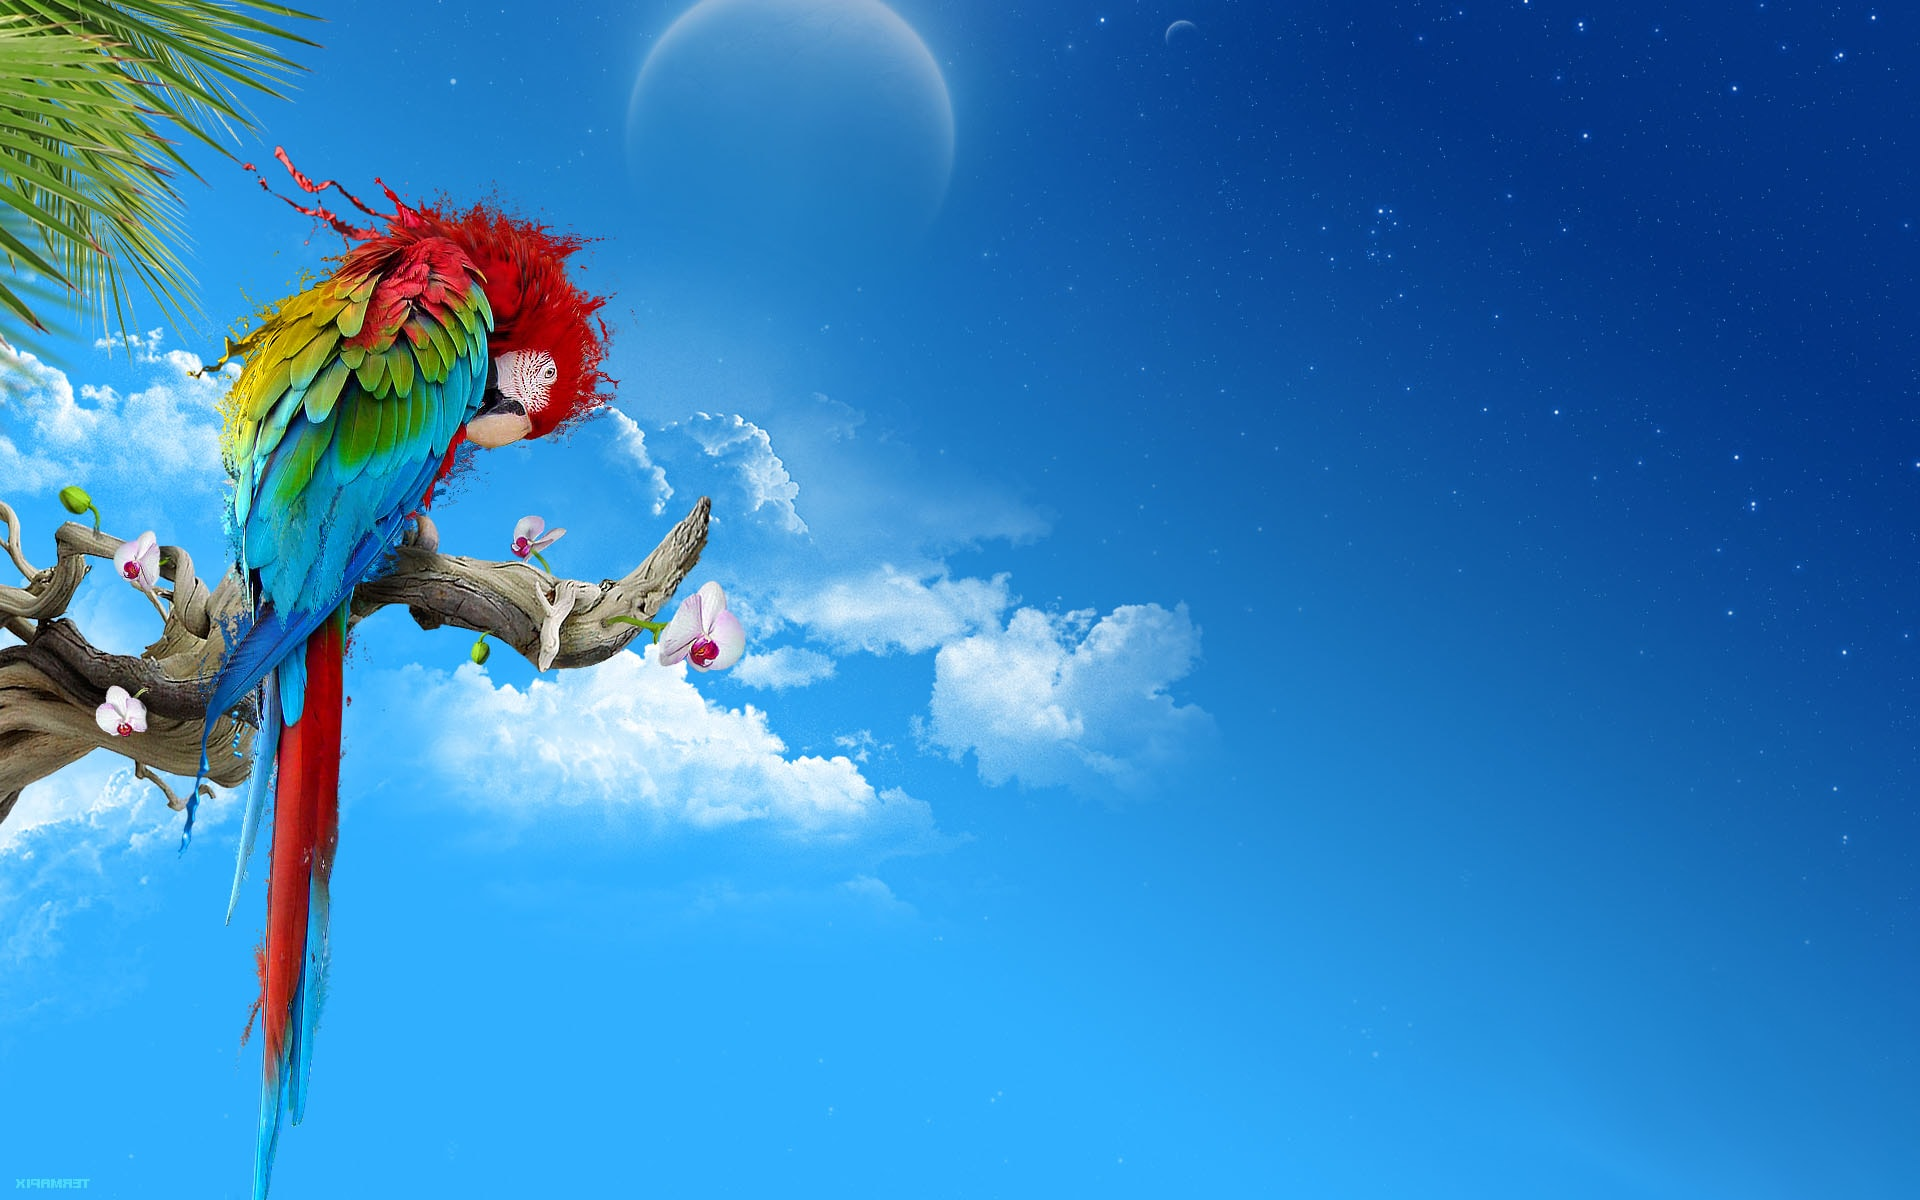 Scarlet macaw Backgrounds